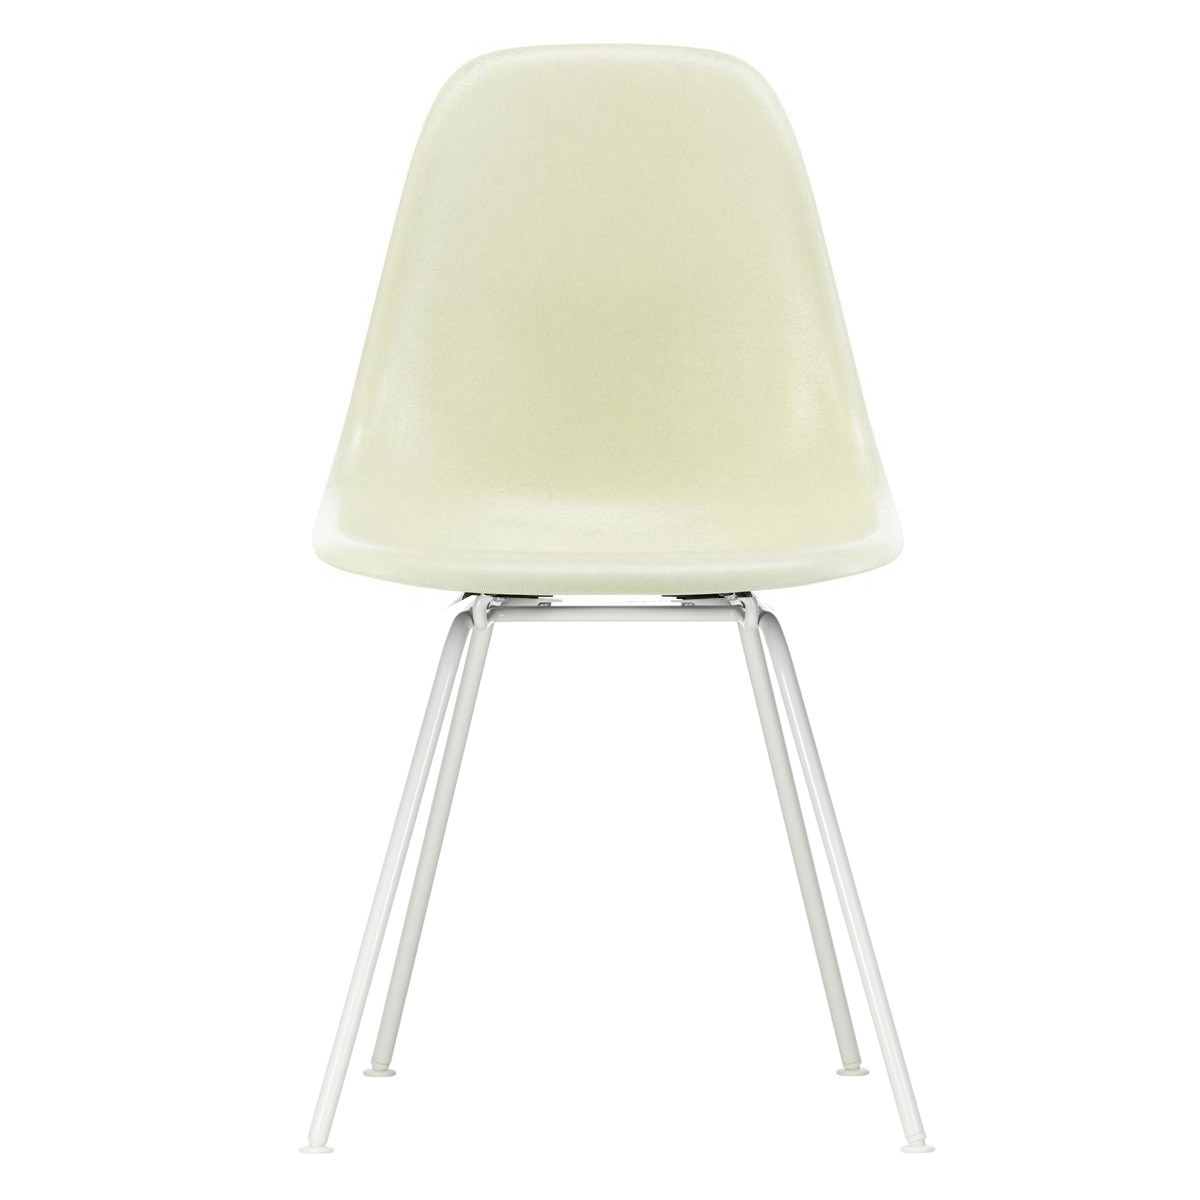 Eames Chair Weiß Vitra Eames Fiberglass Side Chair Dsx White Base | Ambientedirect